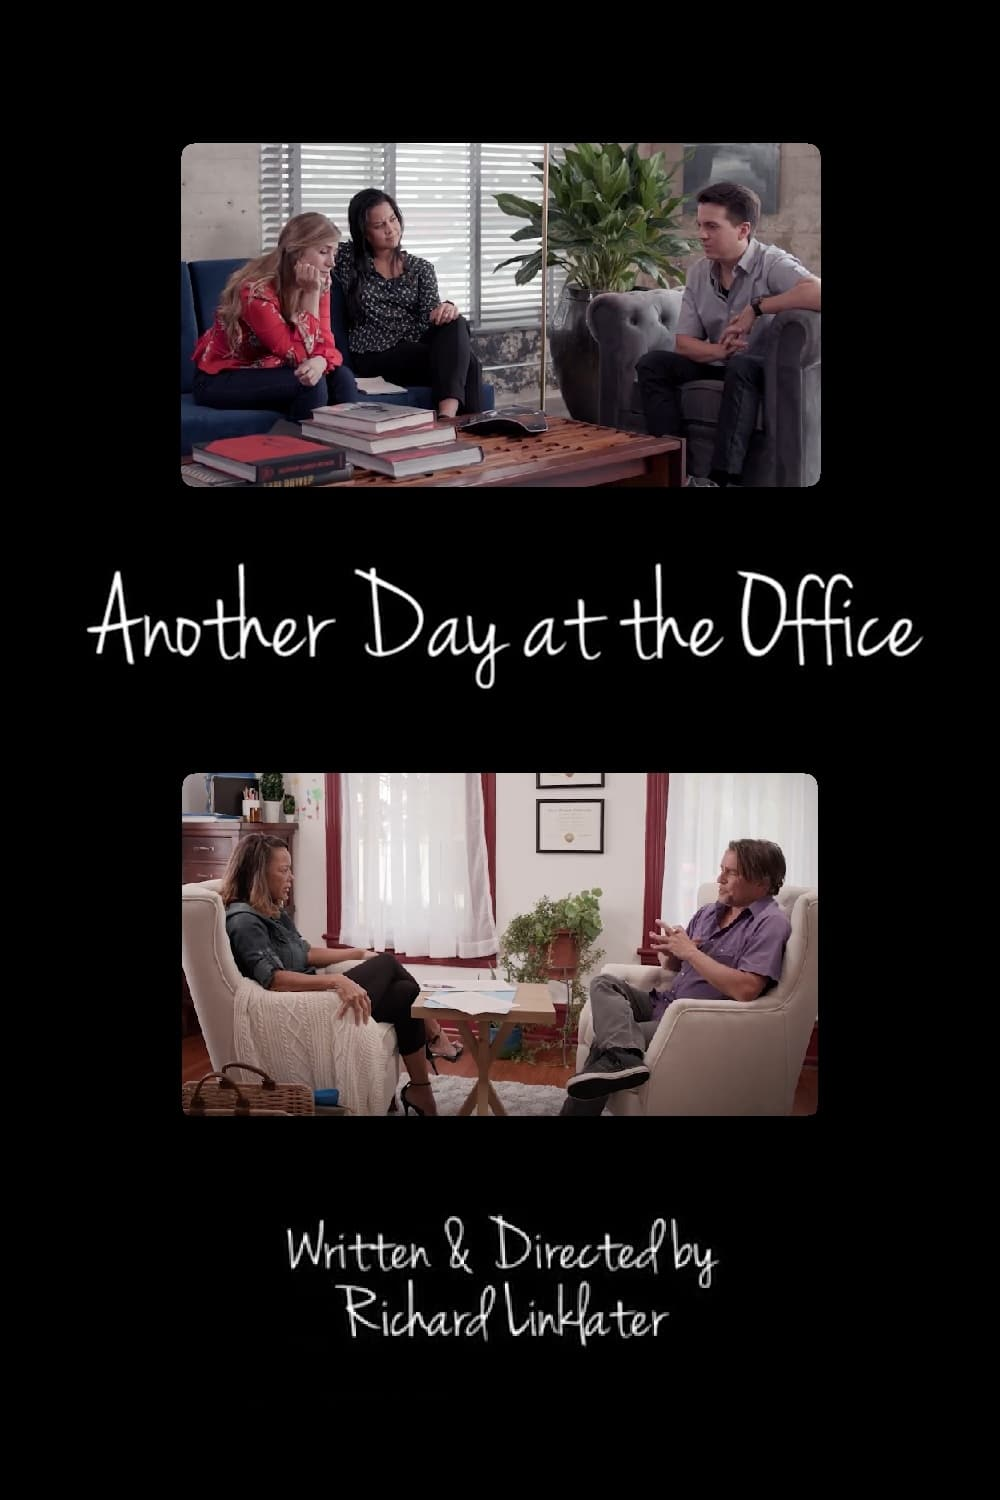 Another Day at the Office (2019)